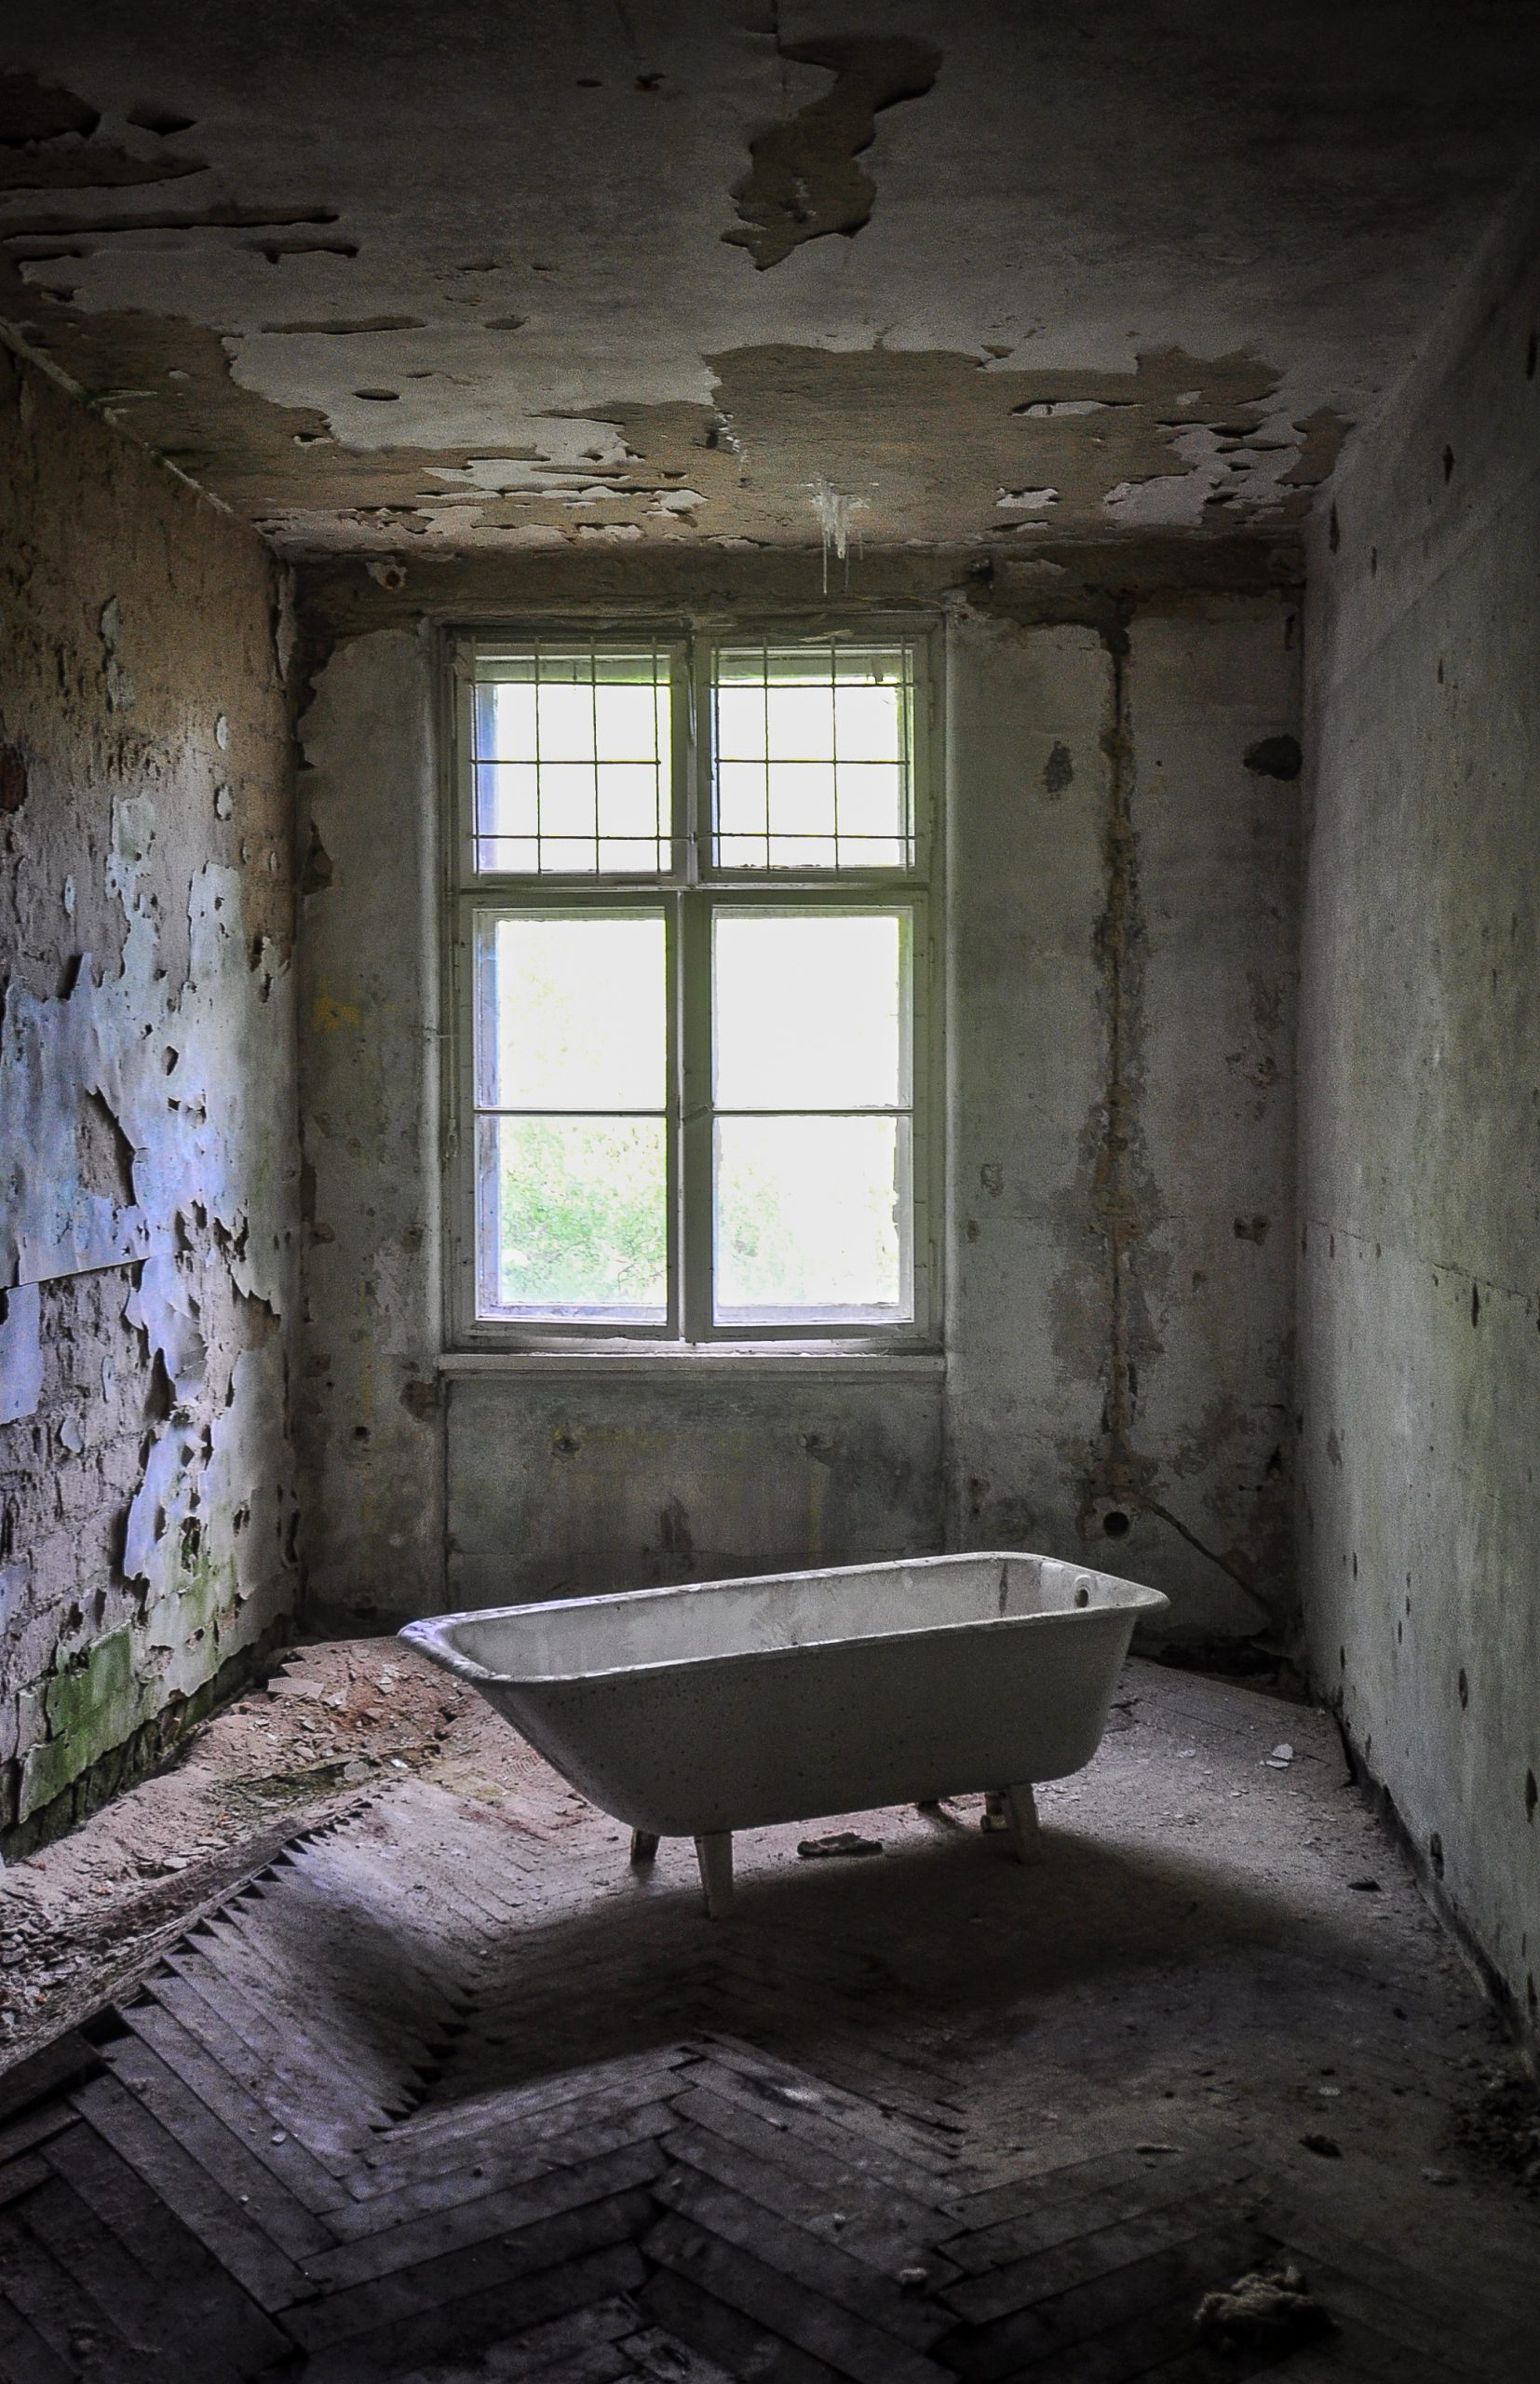 bathtub room kaserne krampnitz abandoned potsdam berlin Kavallerieschule barracks Panzertruppenschule nazi soviet military base germany deutschland